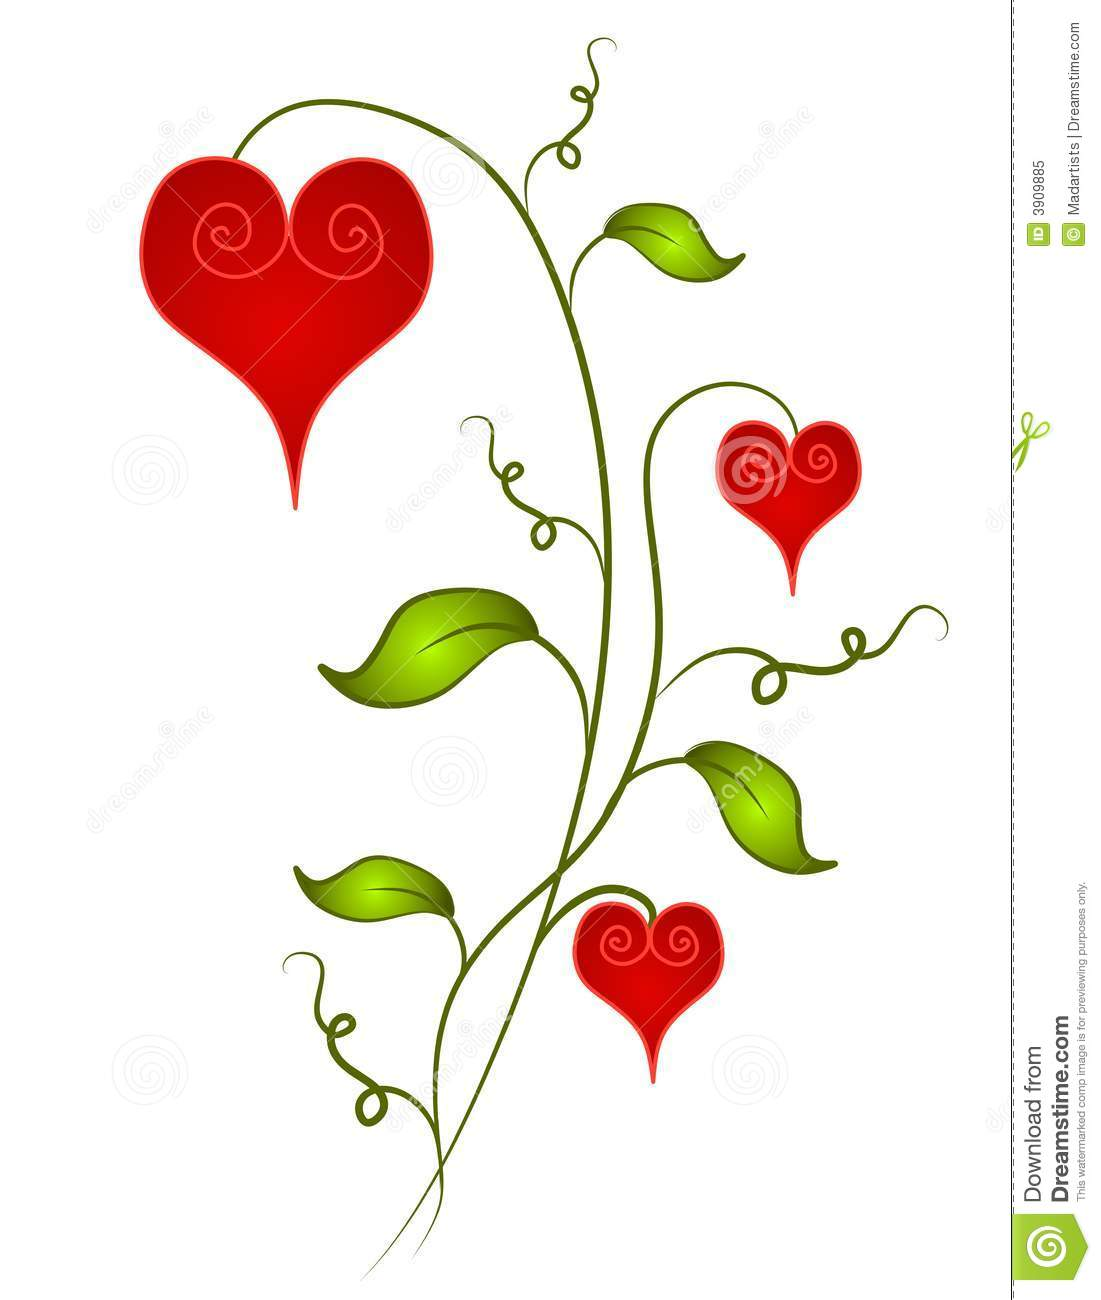 Heart shaped flower clipart 2 » Clipart Station.